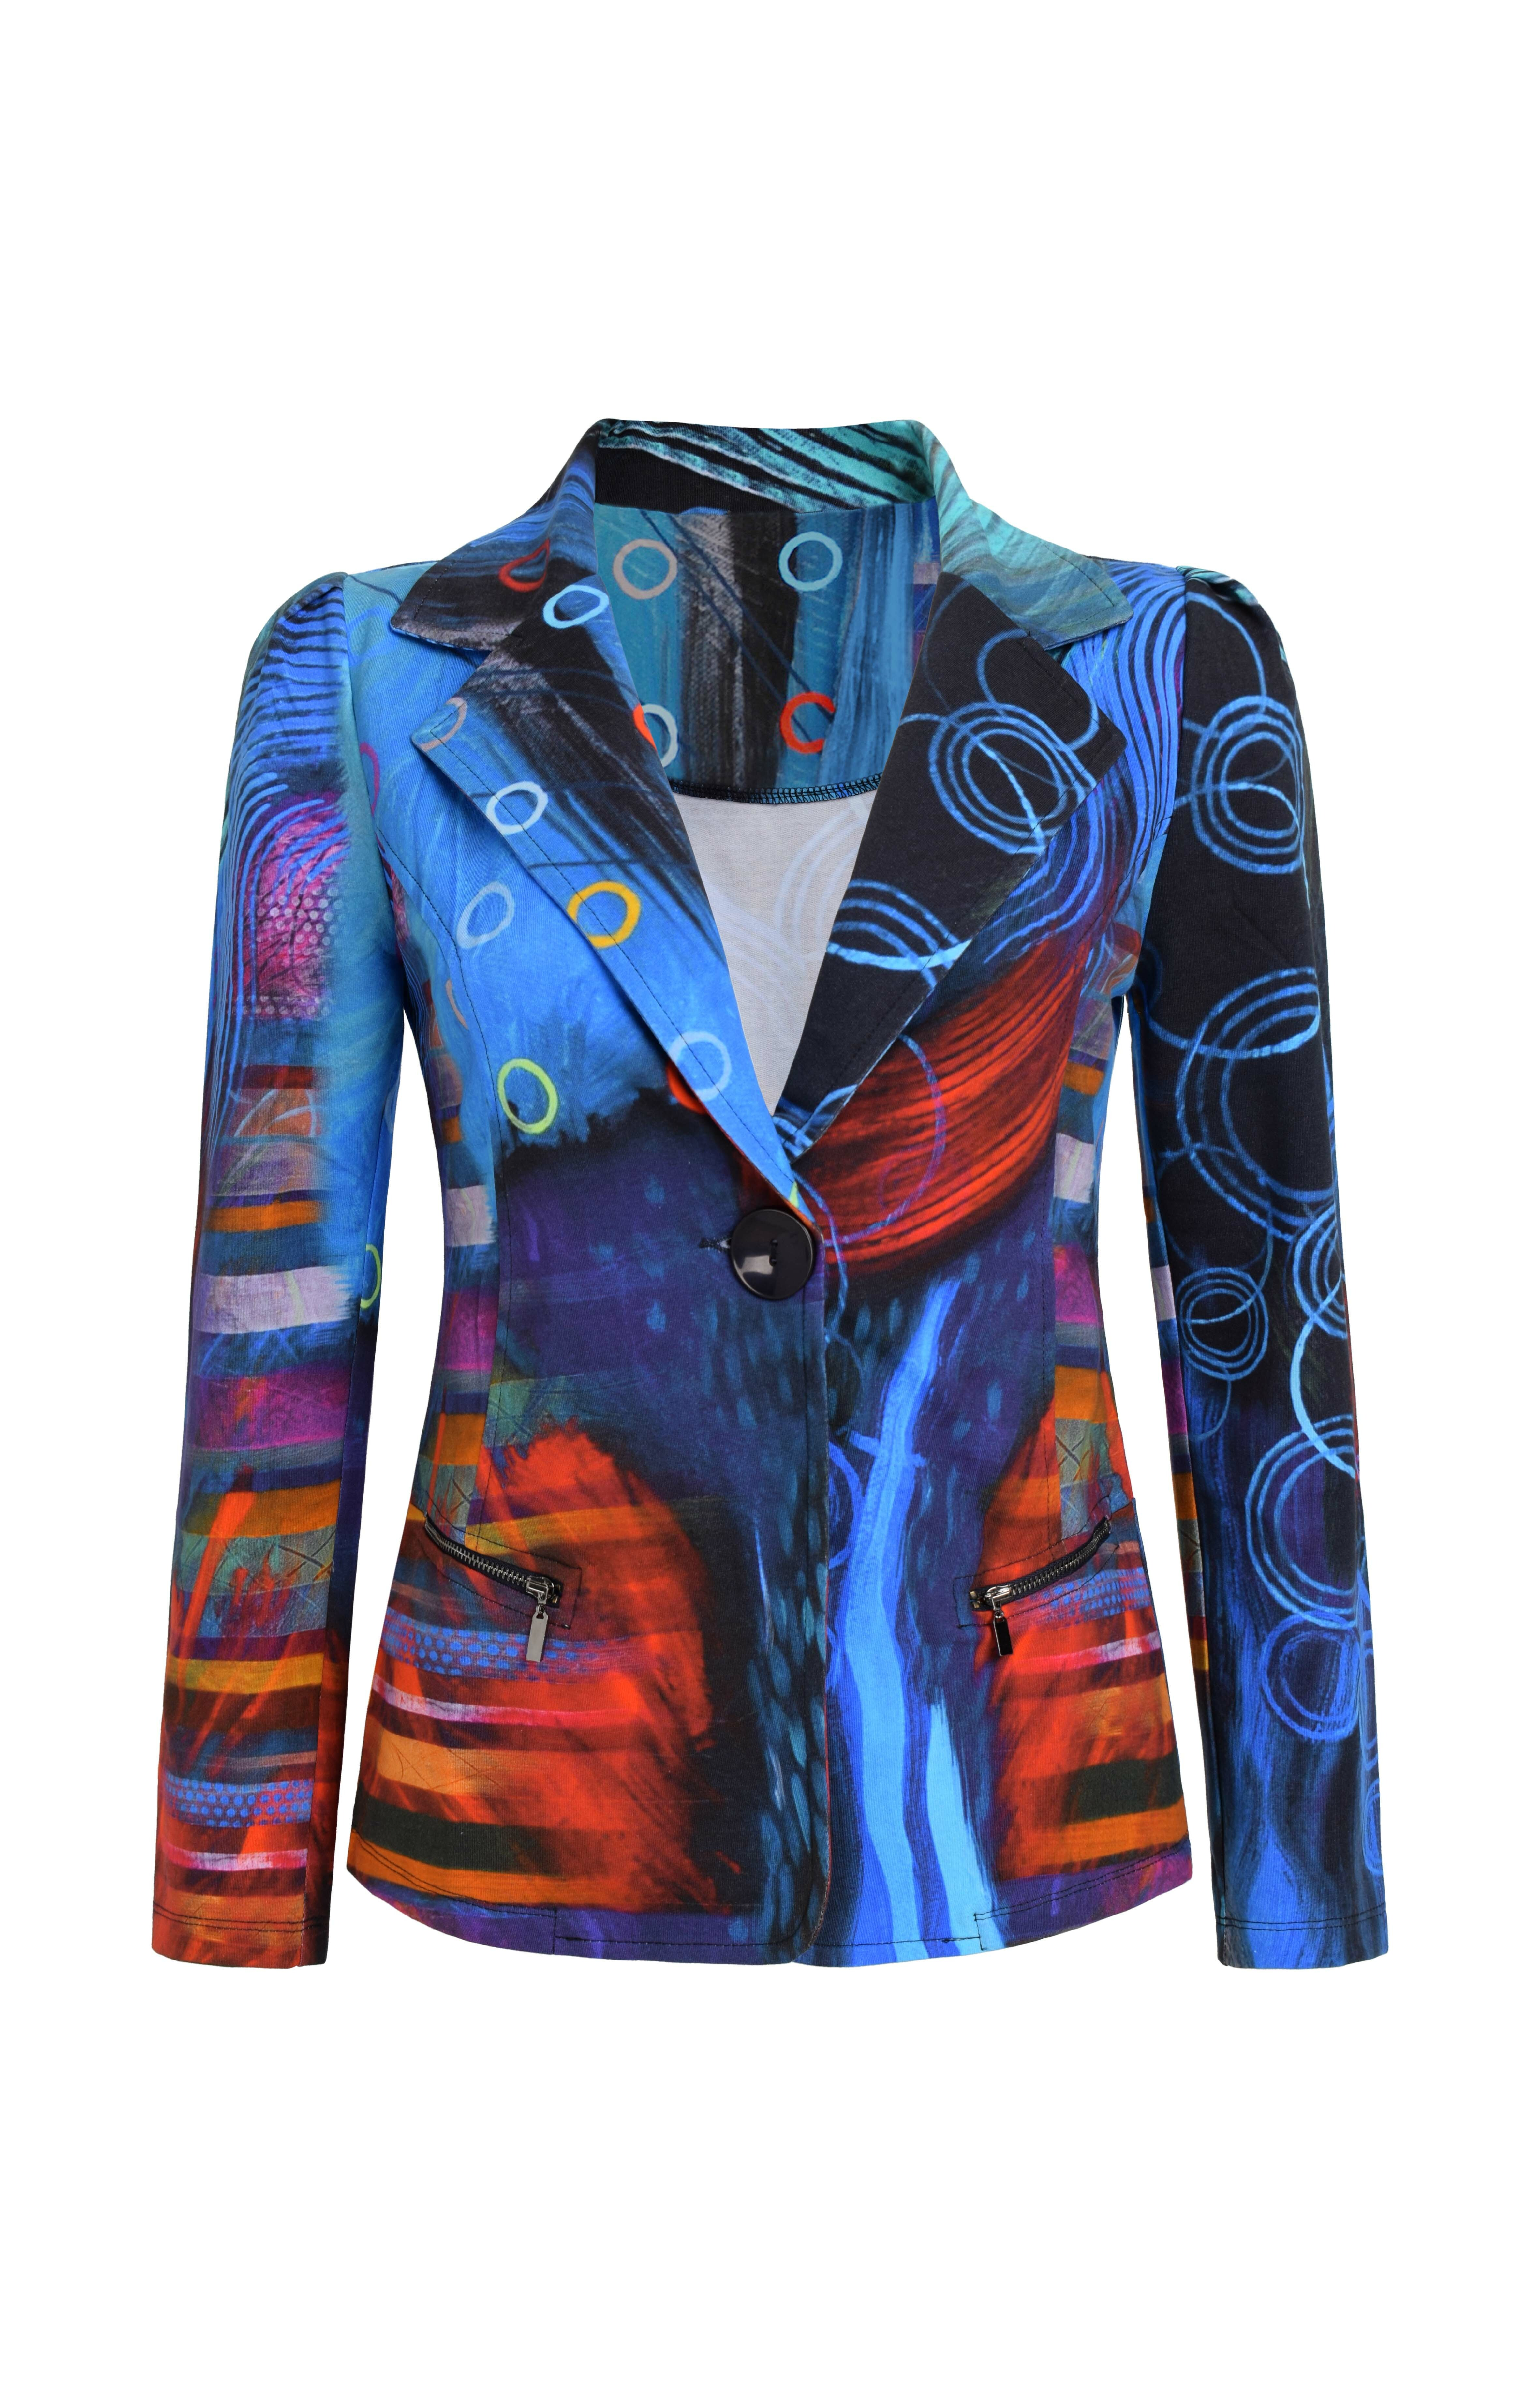 Simply Art Dolcezza: Distilling Colors Of Beauty Zip Pocket Abstract Art Blazer (1 Left!) Dolcezza_SimplyArt_59627